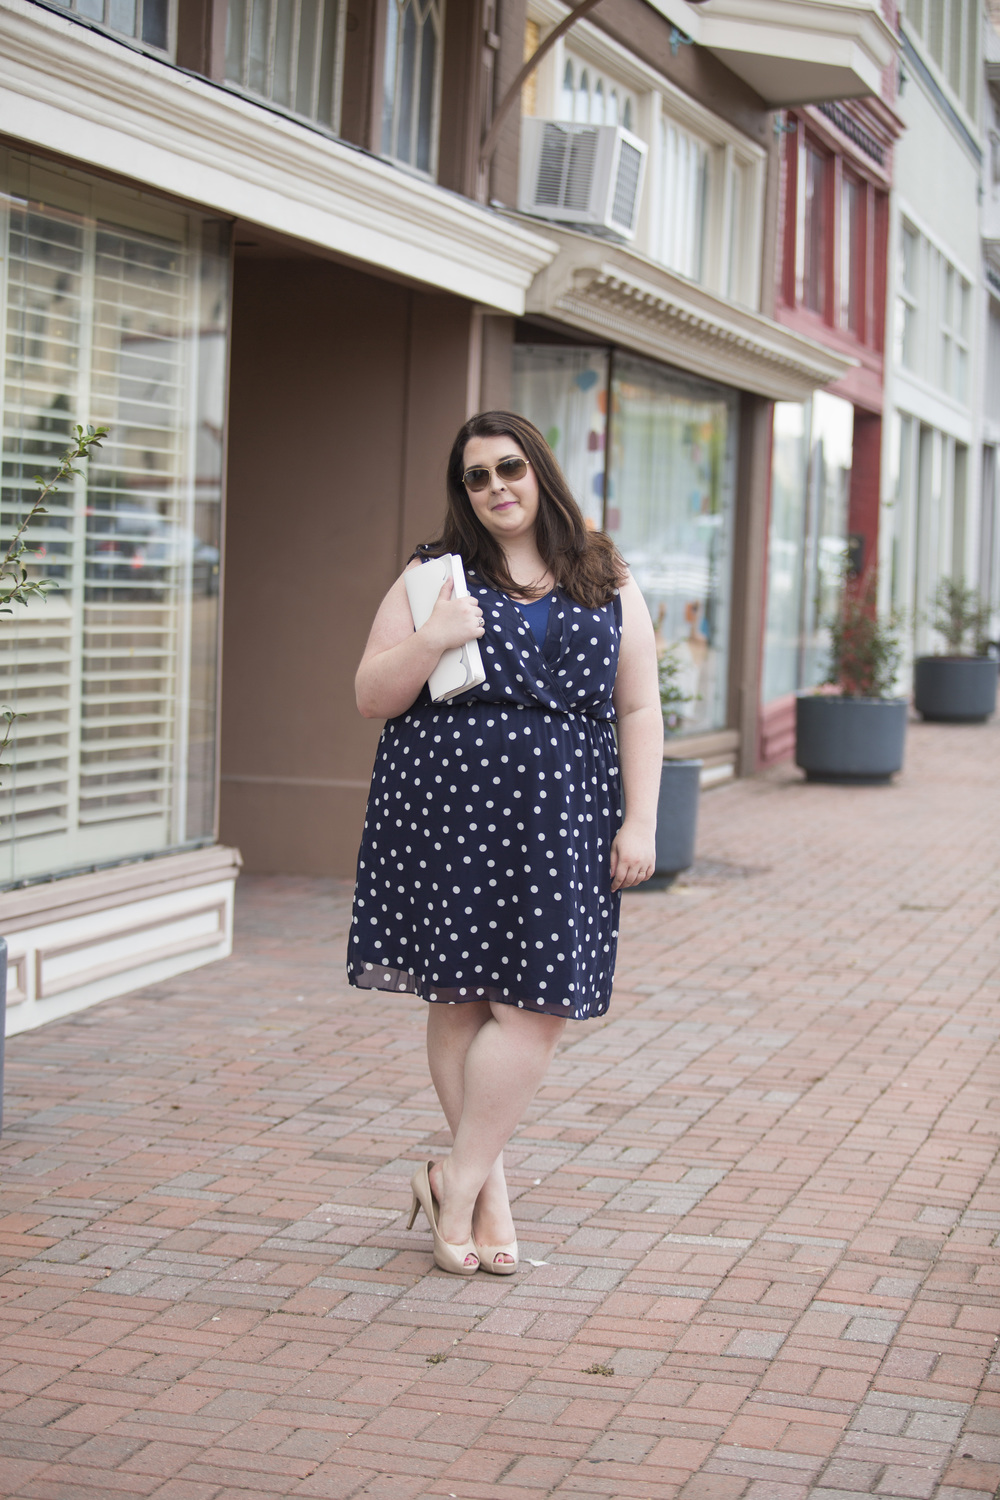 Plus Size Street Style Navy Polka Dot Dress Wedding Guest 3.jpg